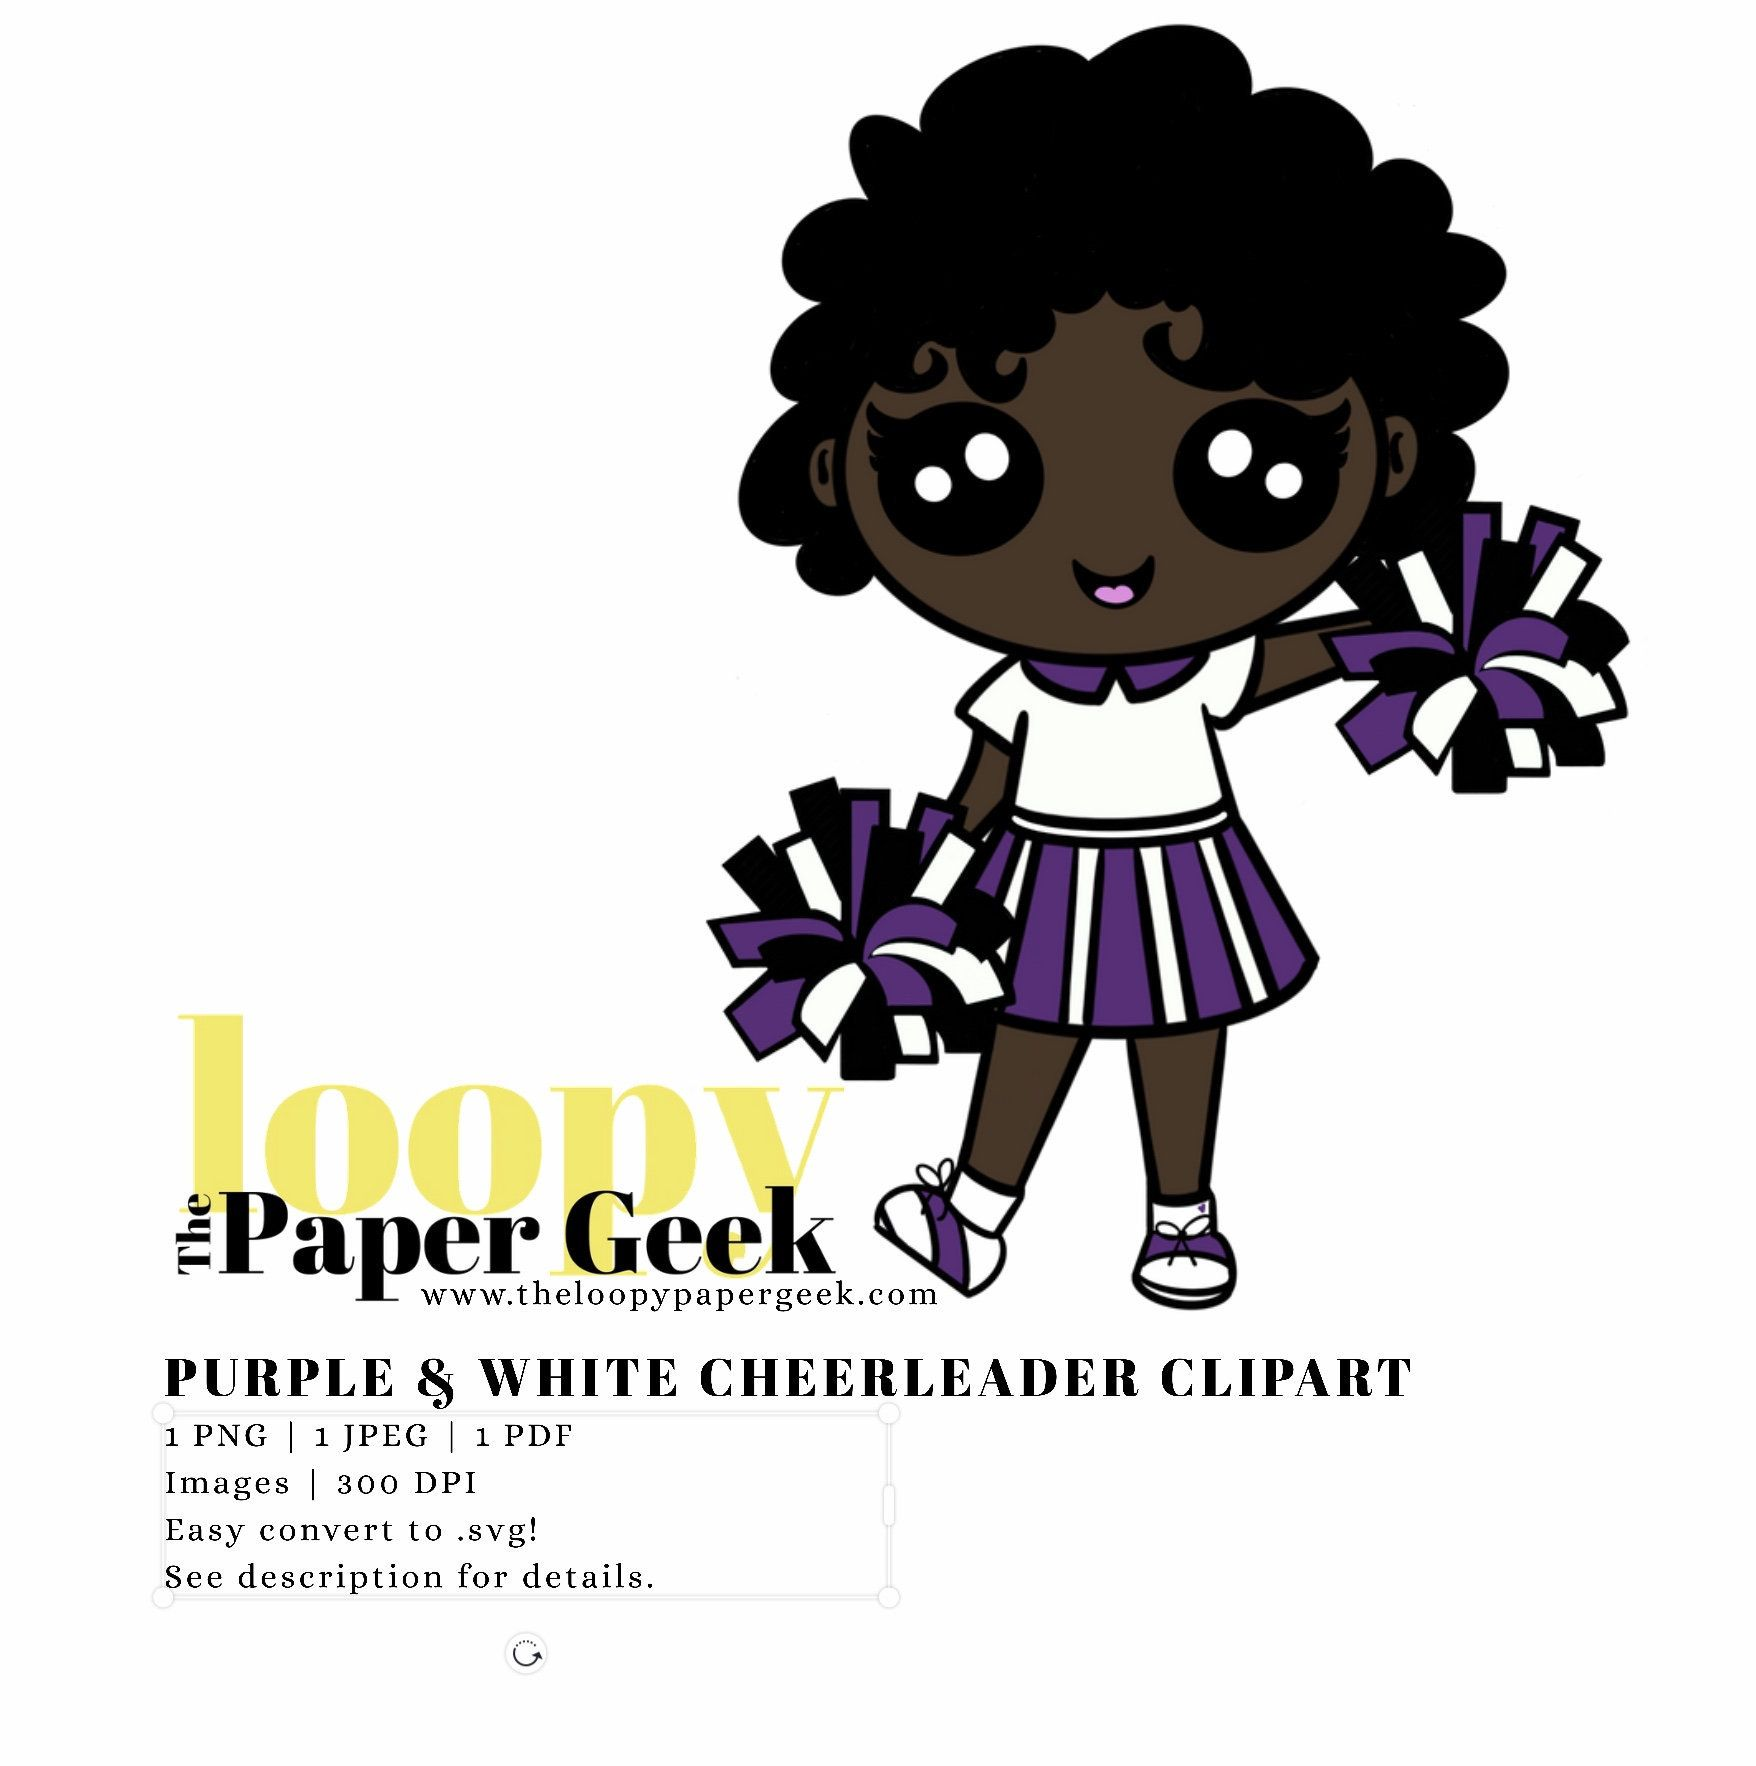 purple and white cheerleader clipart illustration easy convert to svg [ 1756 x 1766 Pixel ]